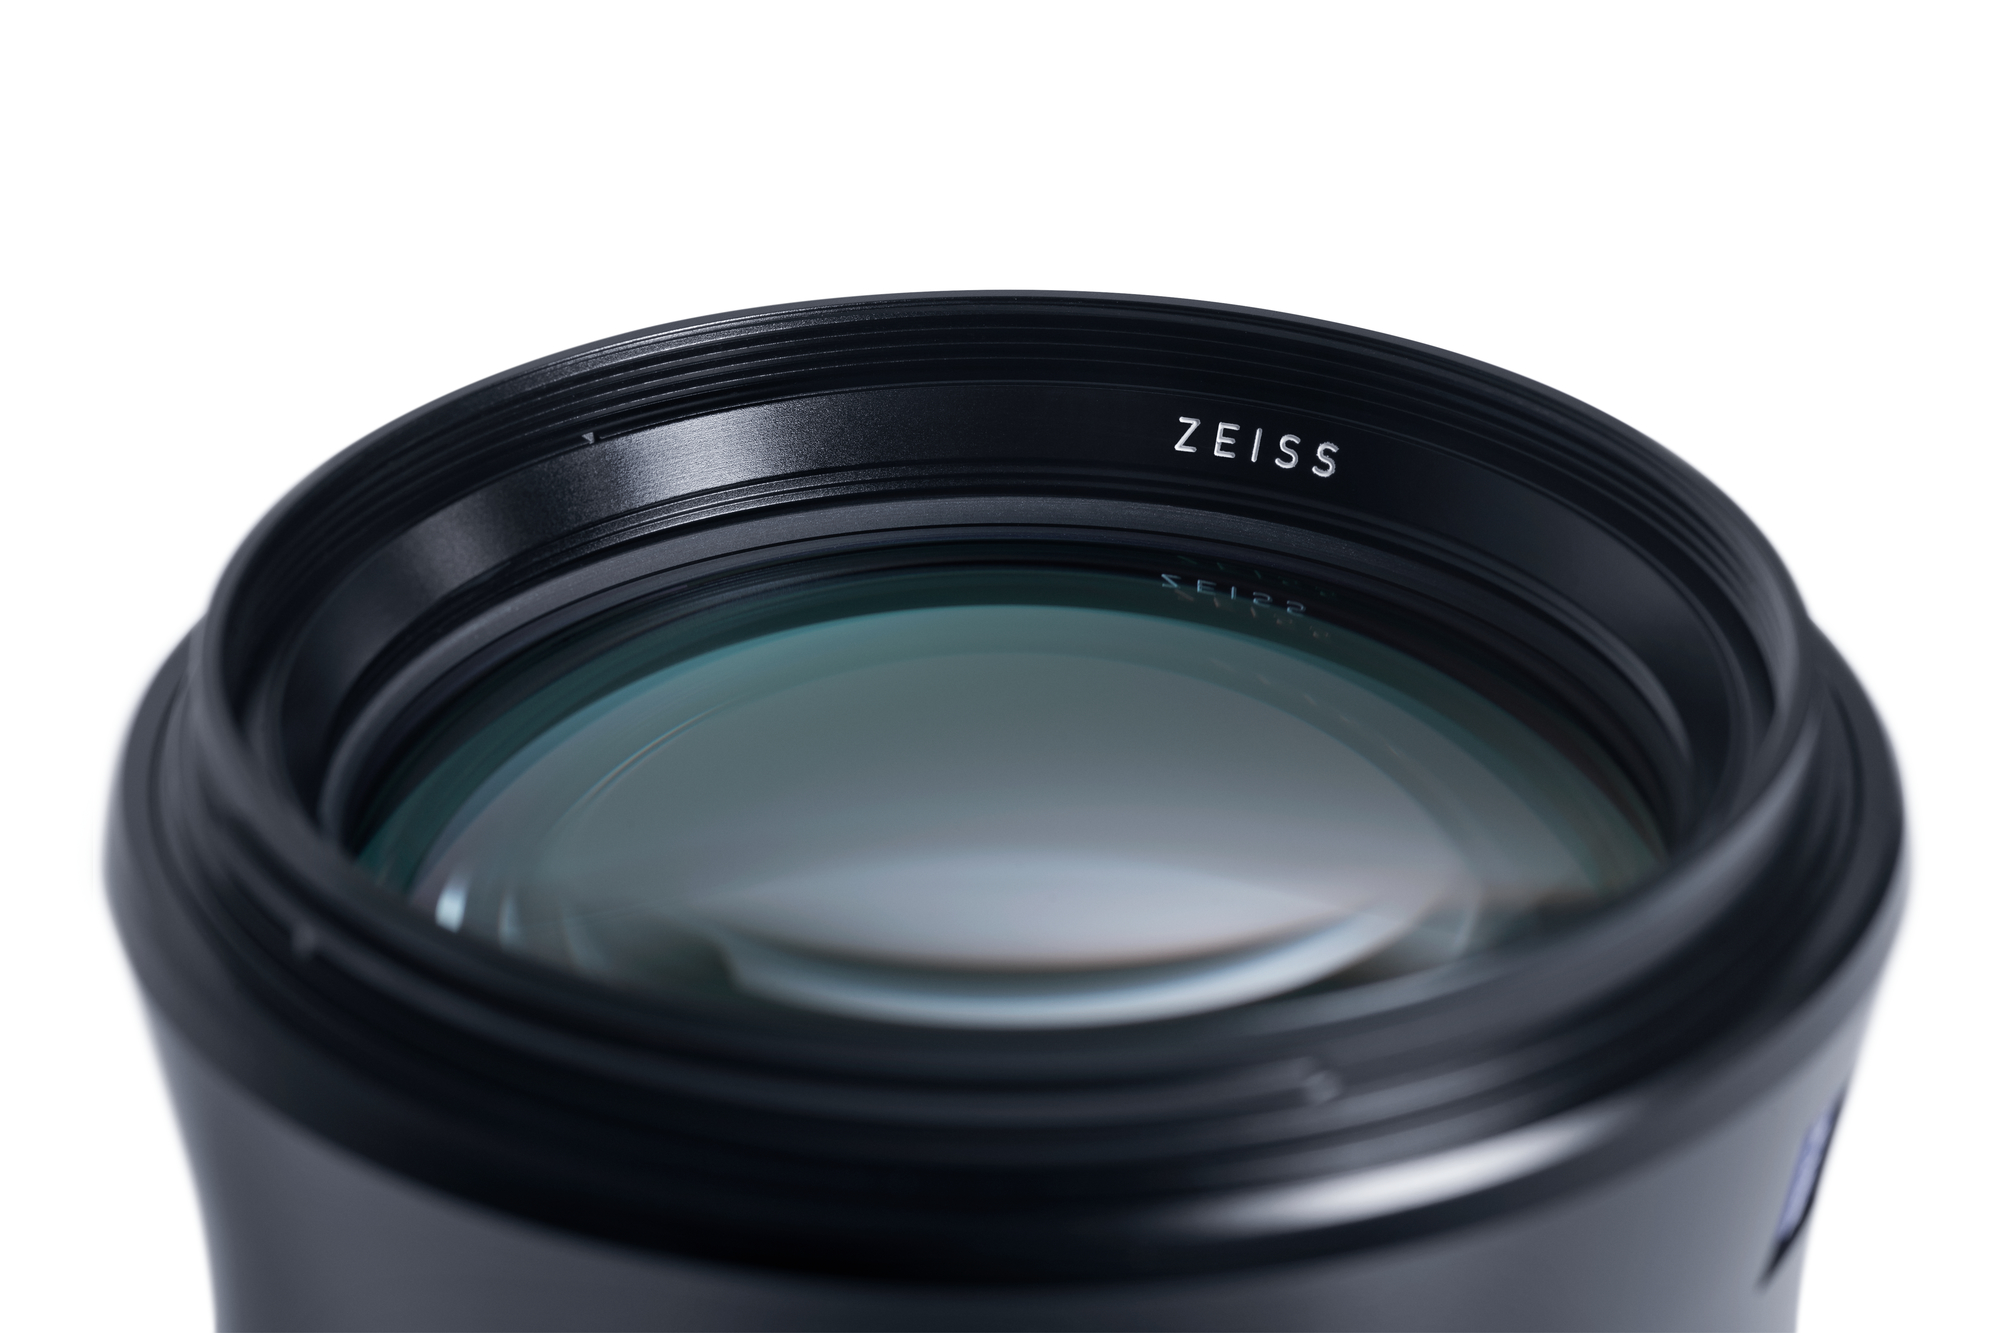 zeiss otus 1.4 100mm lens